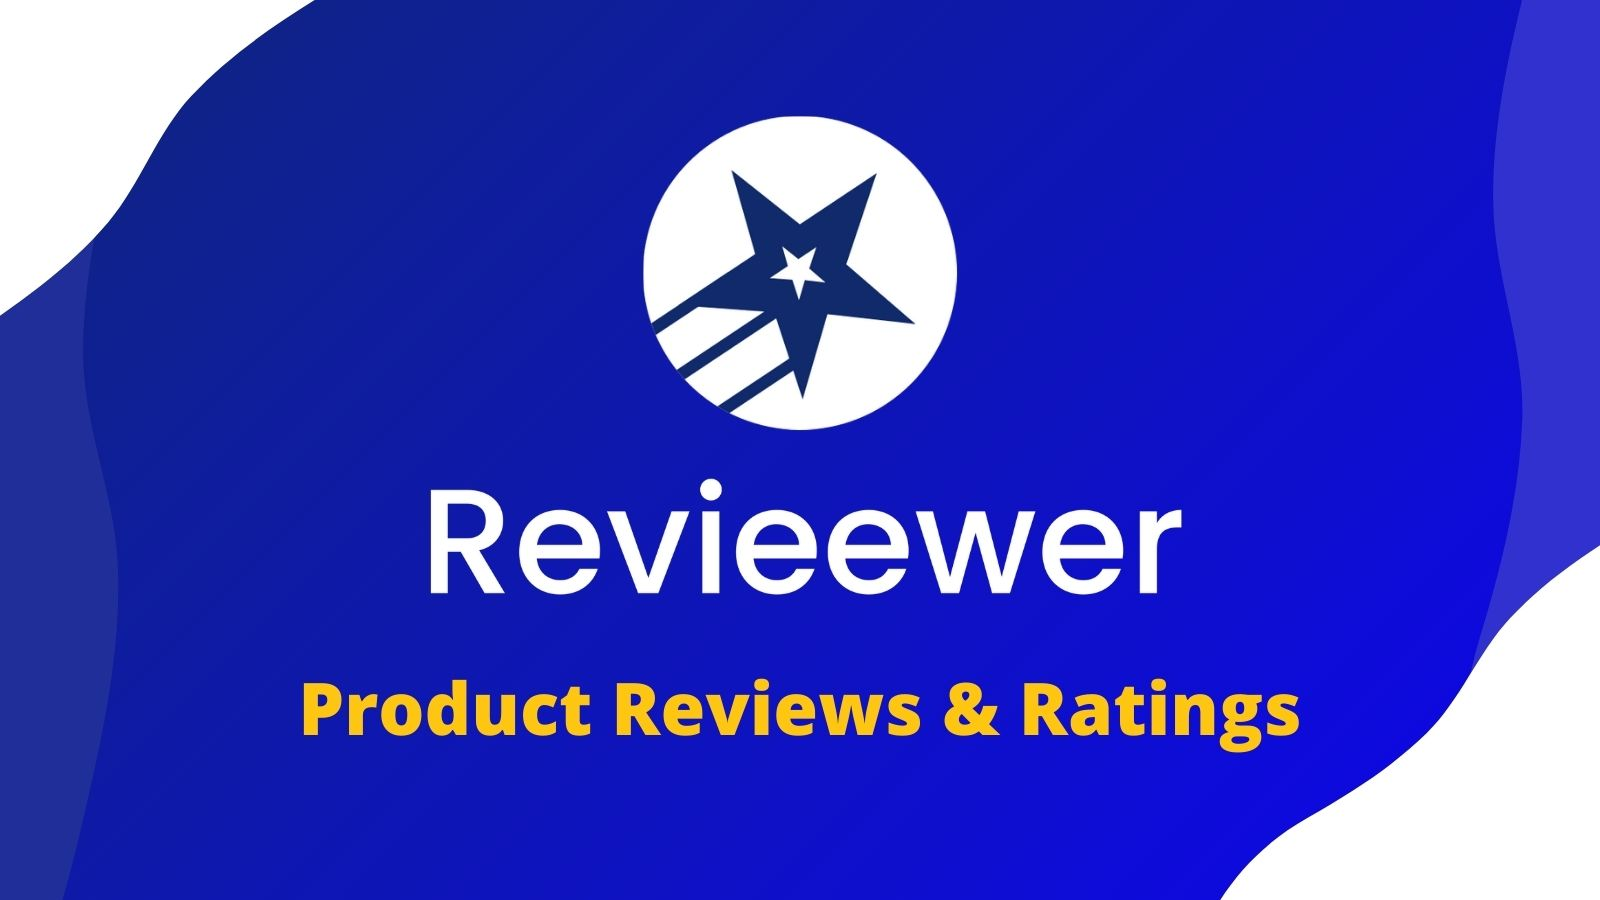 Product Reviews description for Revieewer's Review listing app